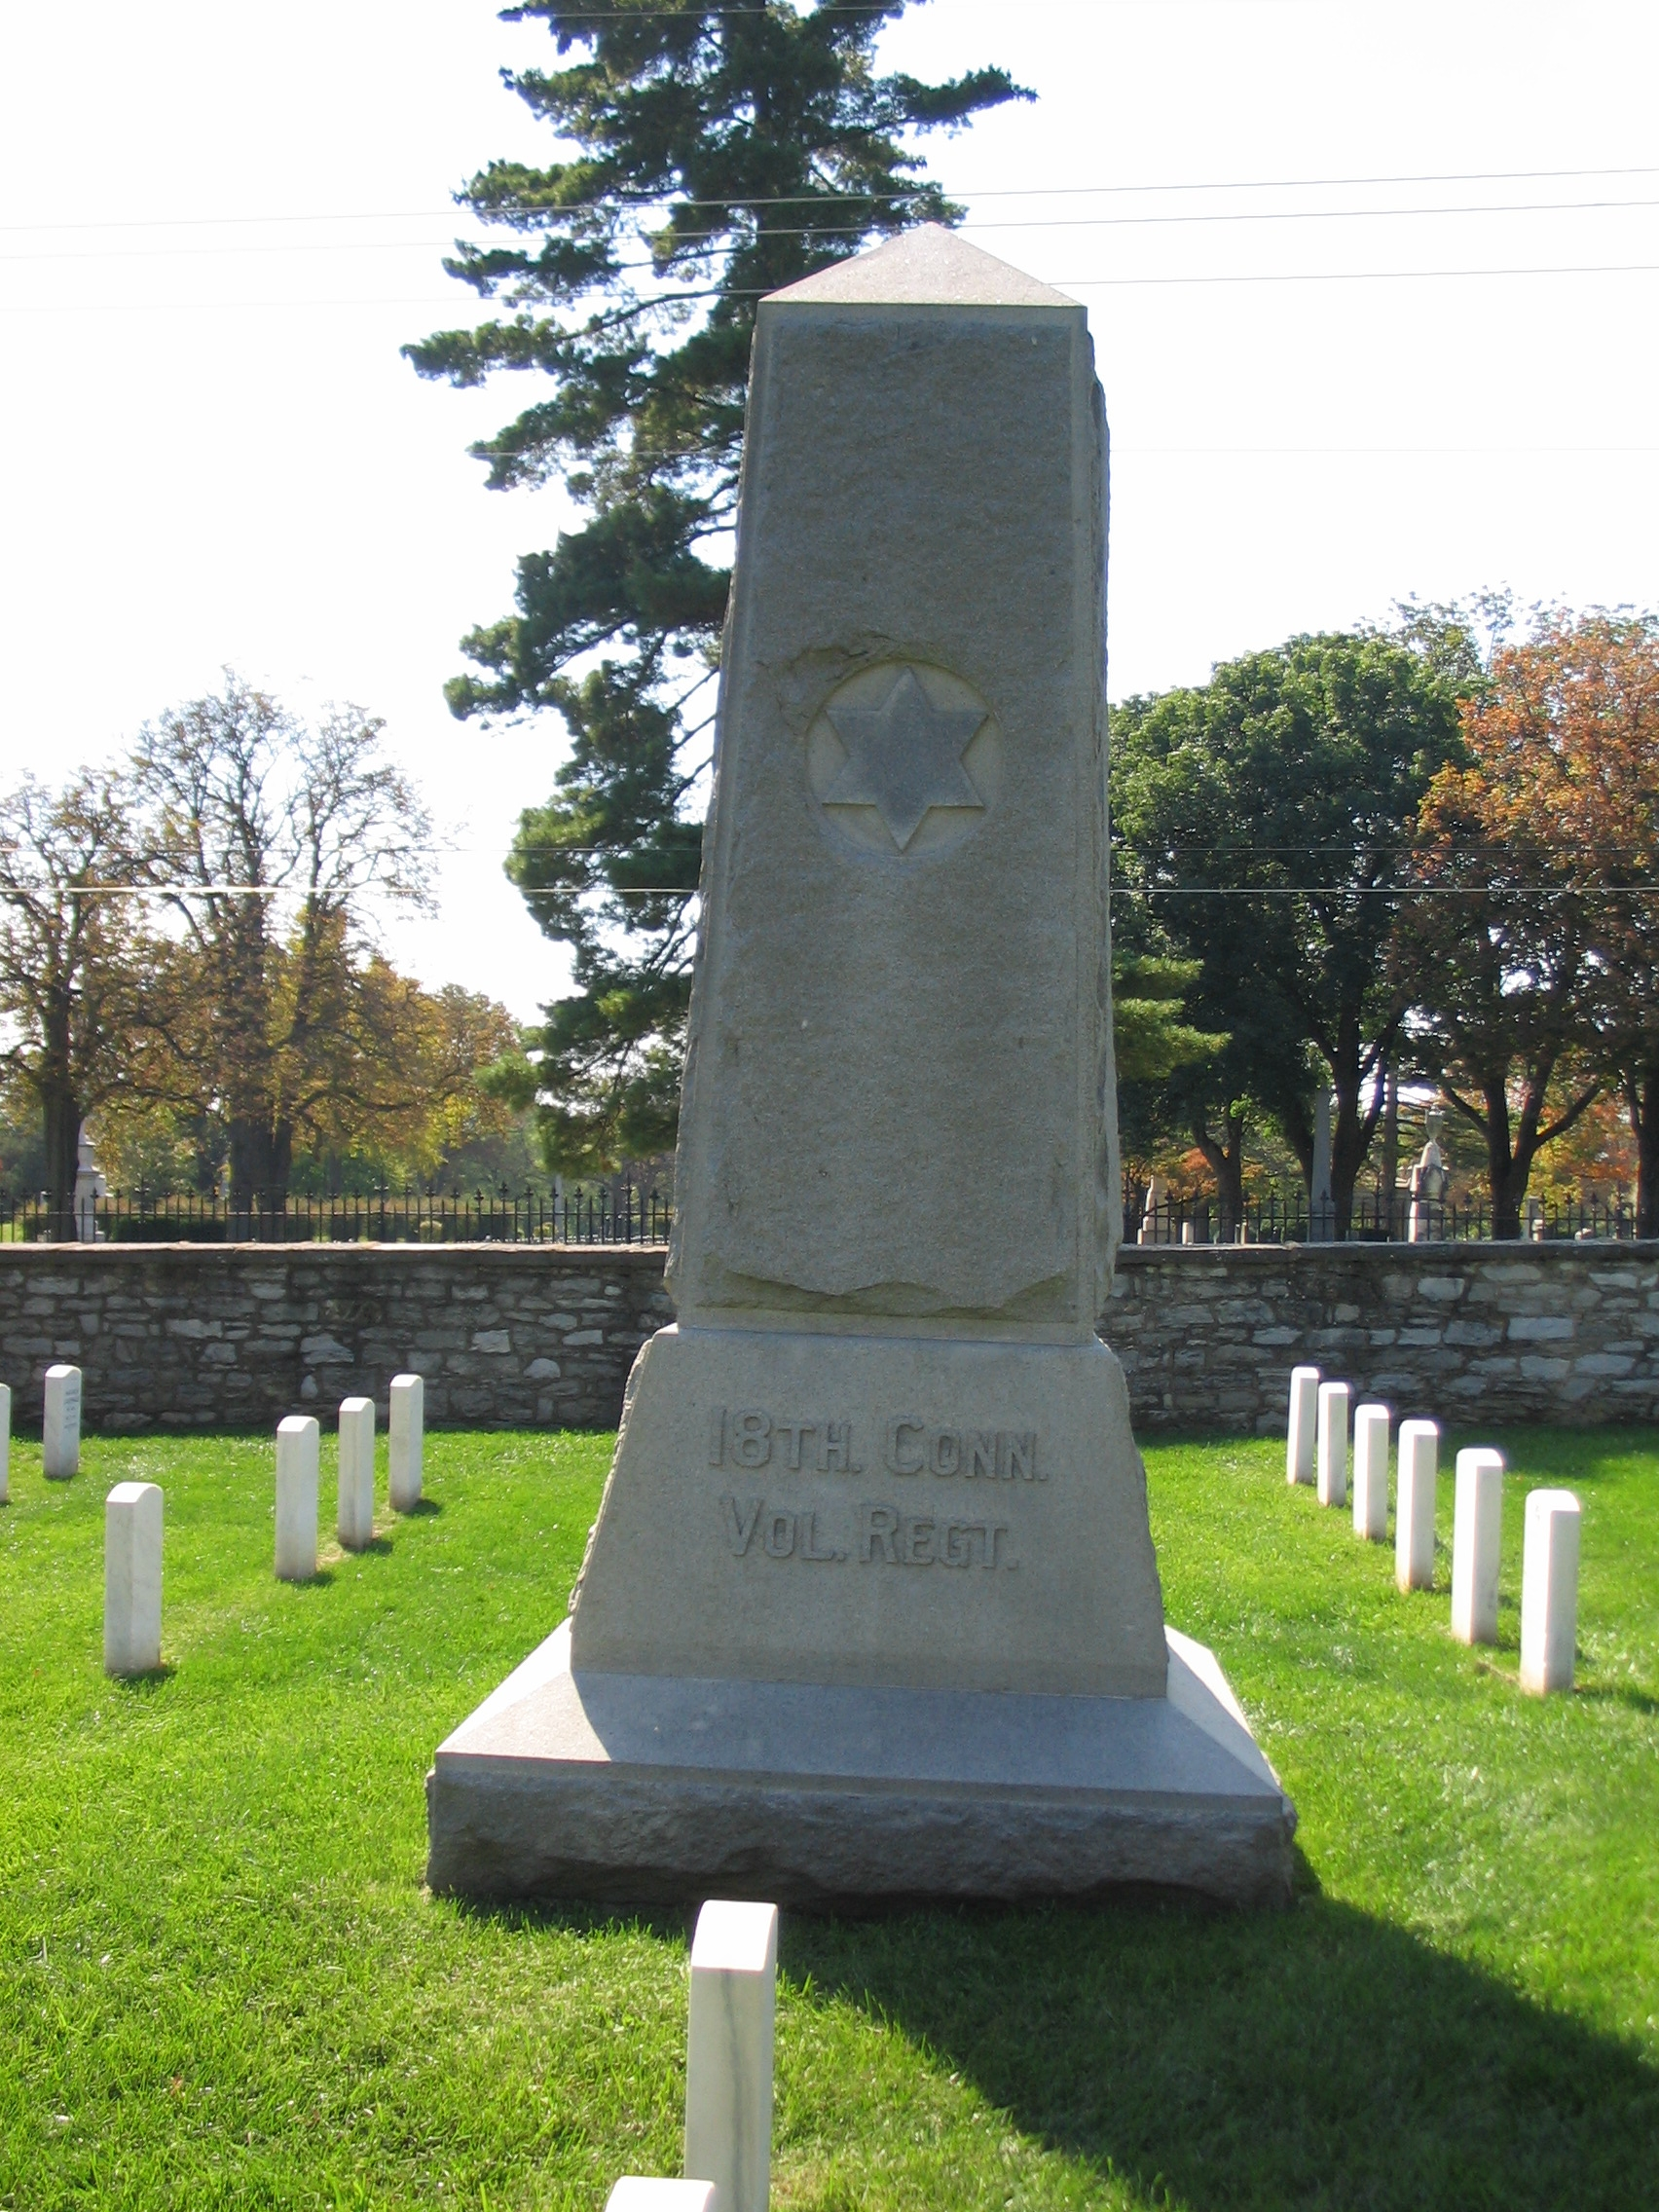 18th Connecticut Volunteer Regiment Memorial